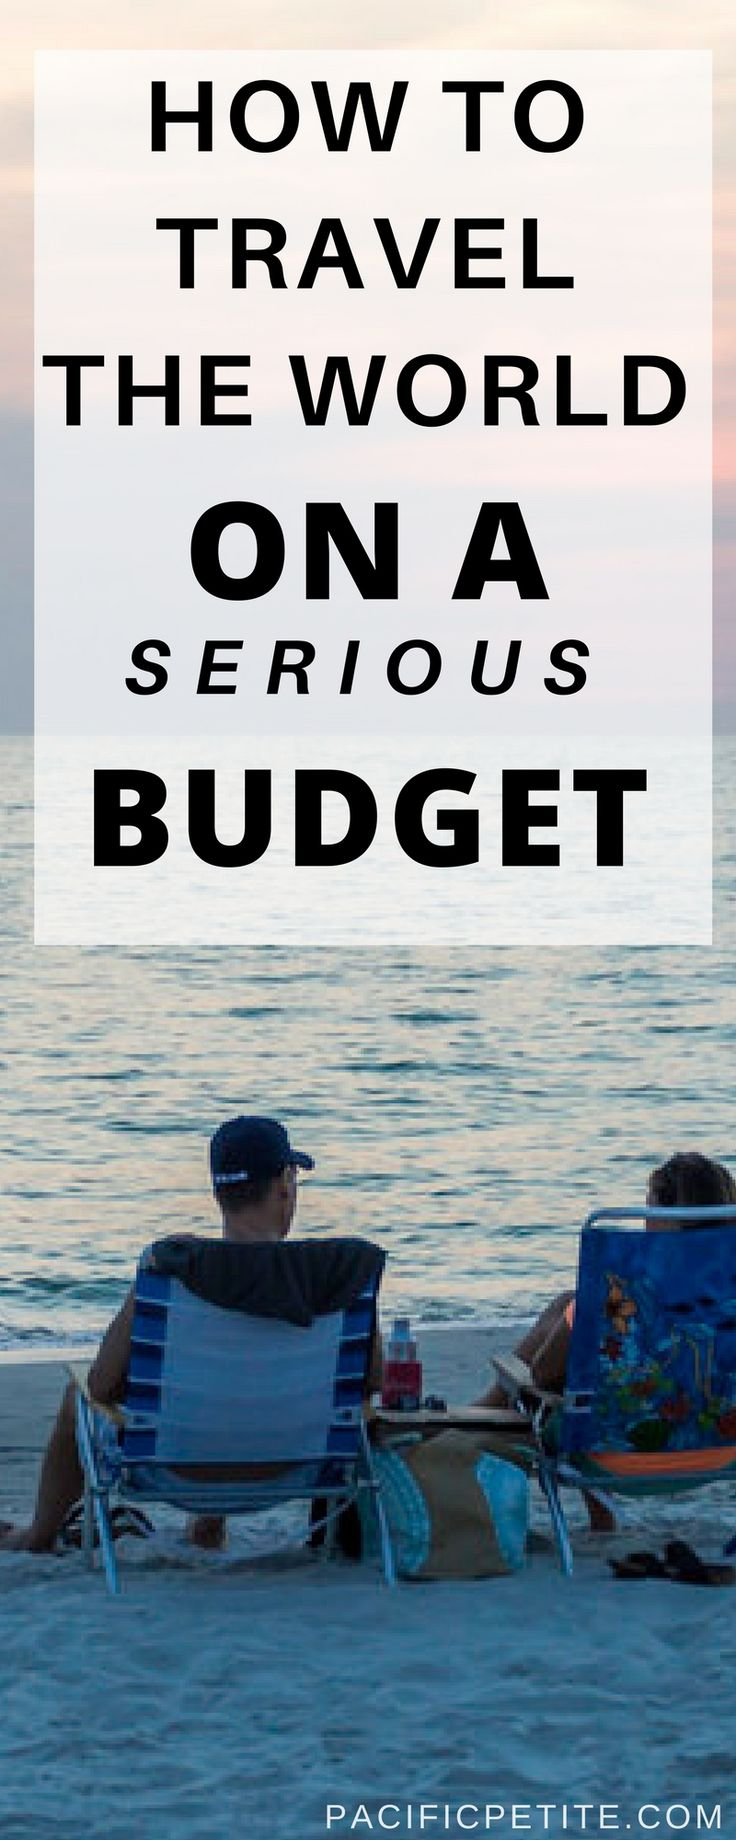 Are you dreaming of traveling the world but you're bank account is the only thing holding you back? I'll show you exactly how to travel the world when you're on a serious budget. Broken down in 8 simple steps! Enjoy traveling to any destination and cross it off your bucketlist.